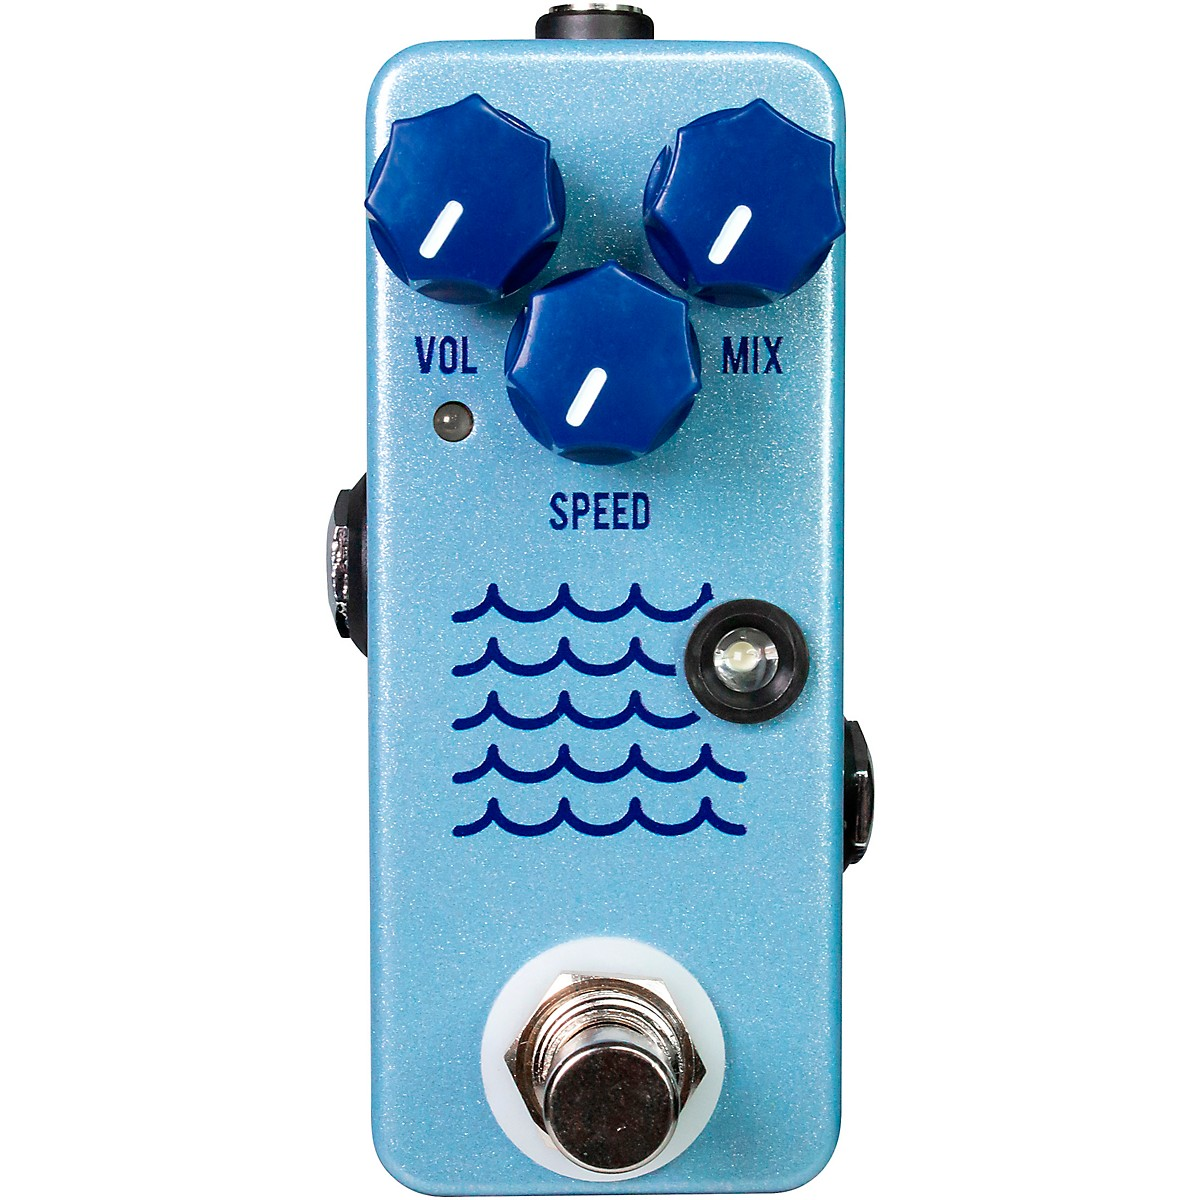 JHS Pedals Tidewater Tremolo Effects Pedal